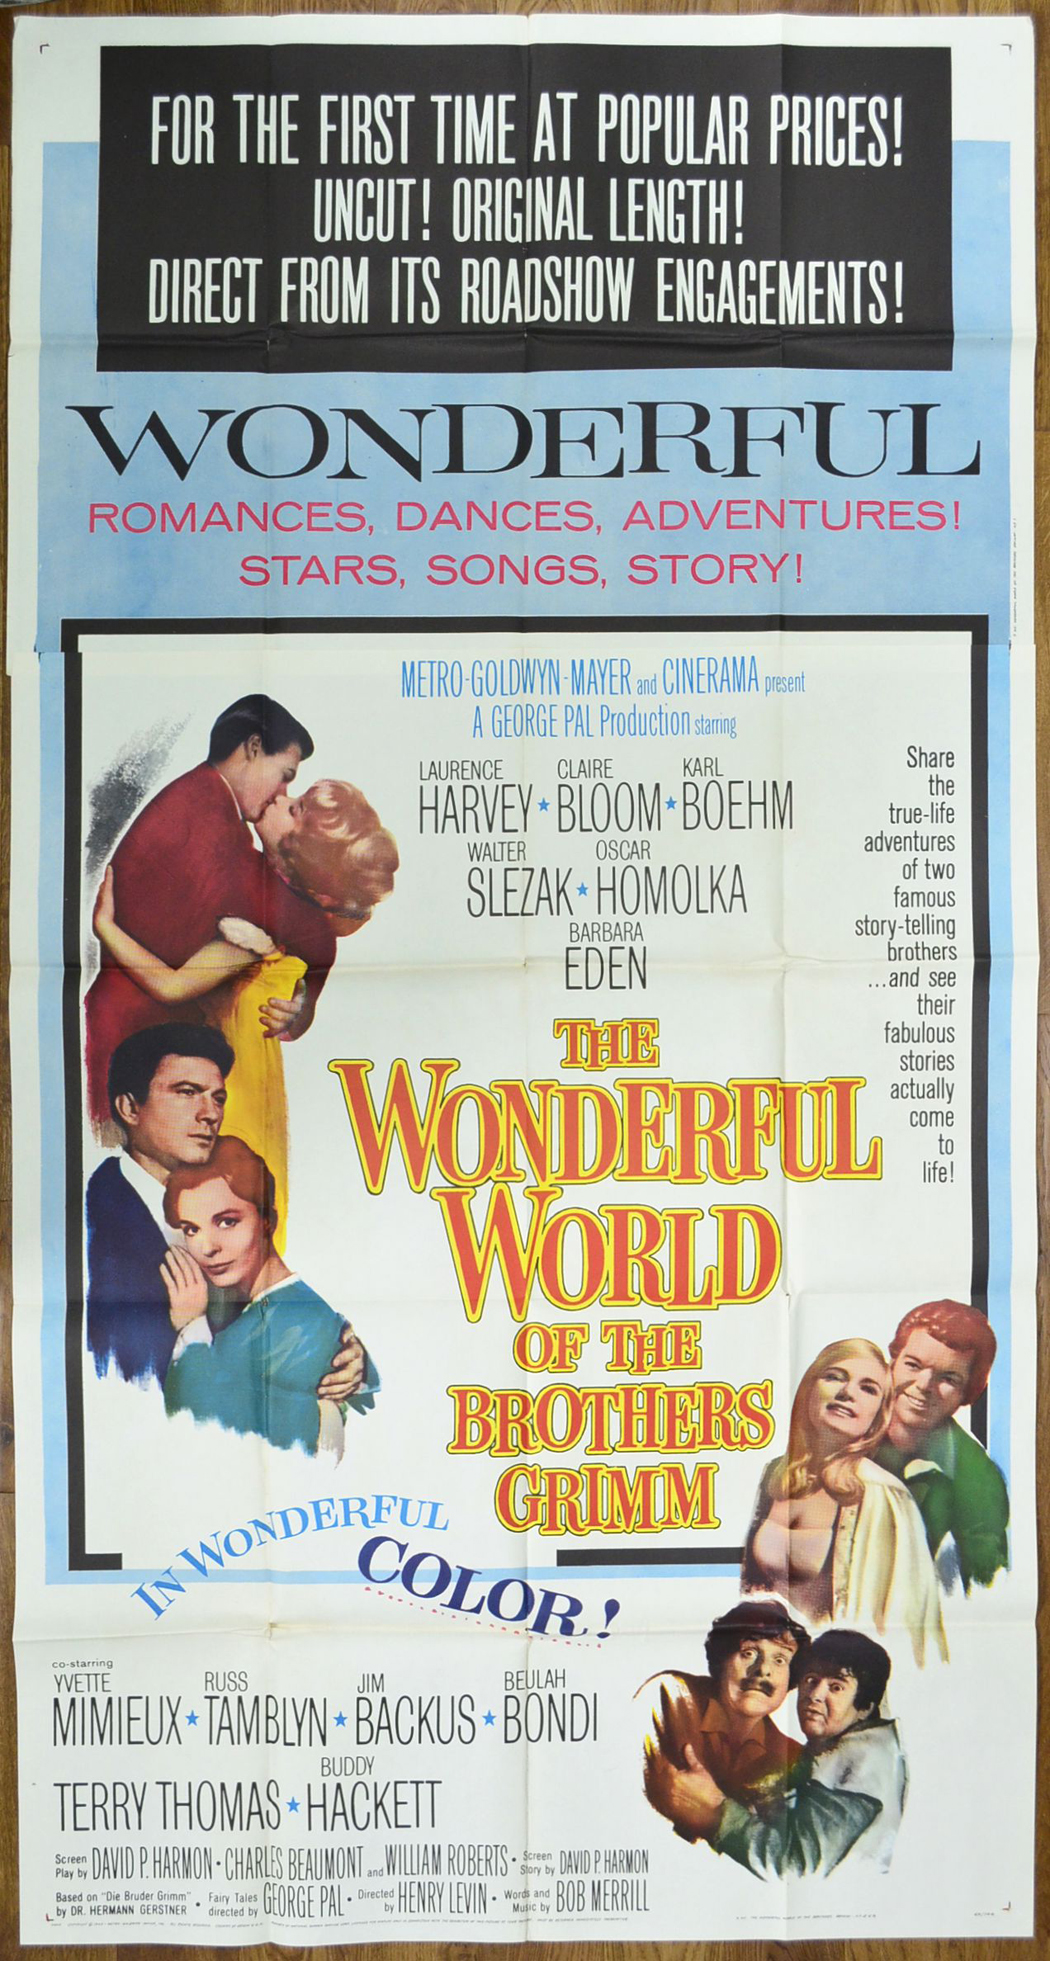 Wonderful World Of The Brothers Grimm (The) - Original Cinema Movie Poster From pastposters.com ...